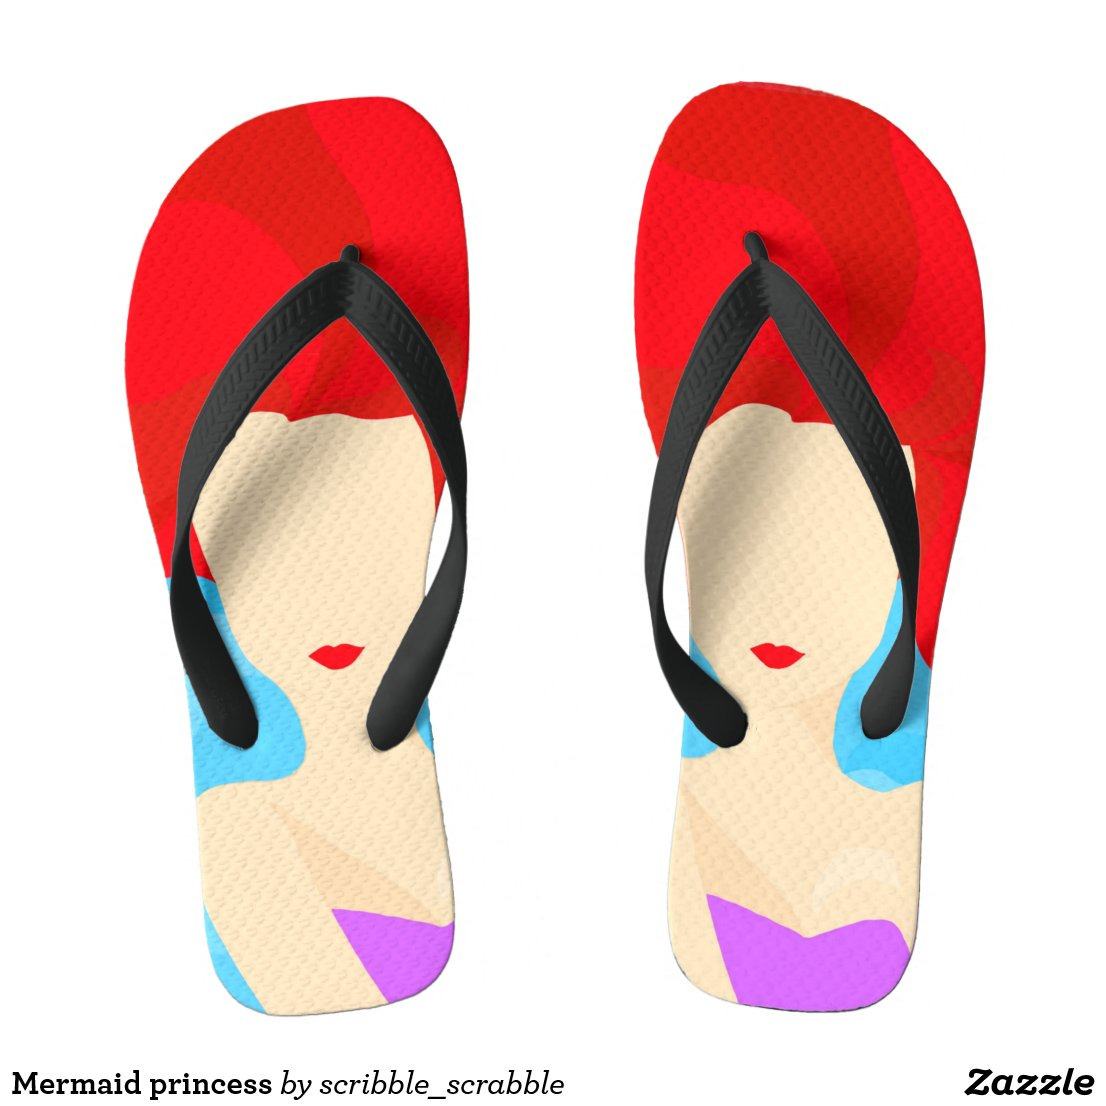 Mermaid princess flip flops